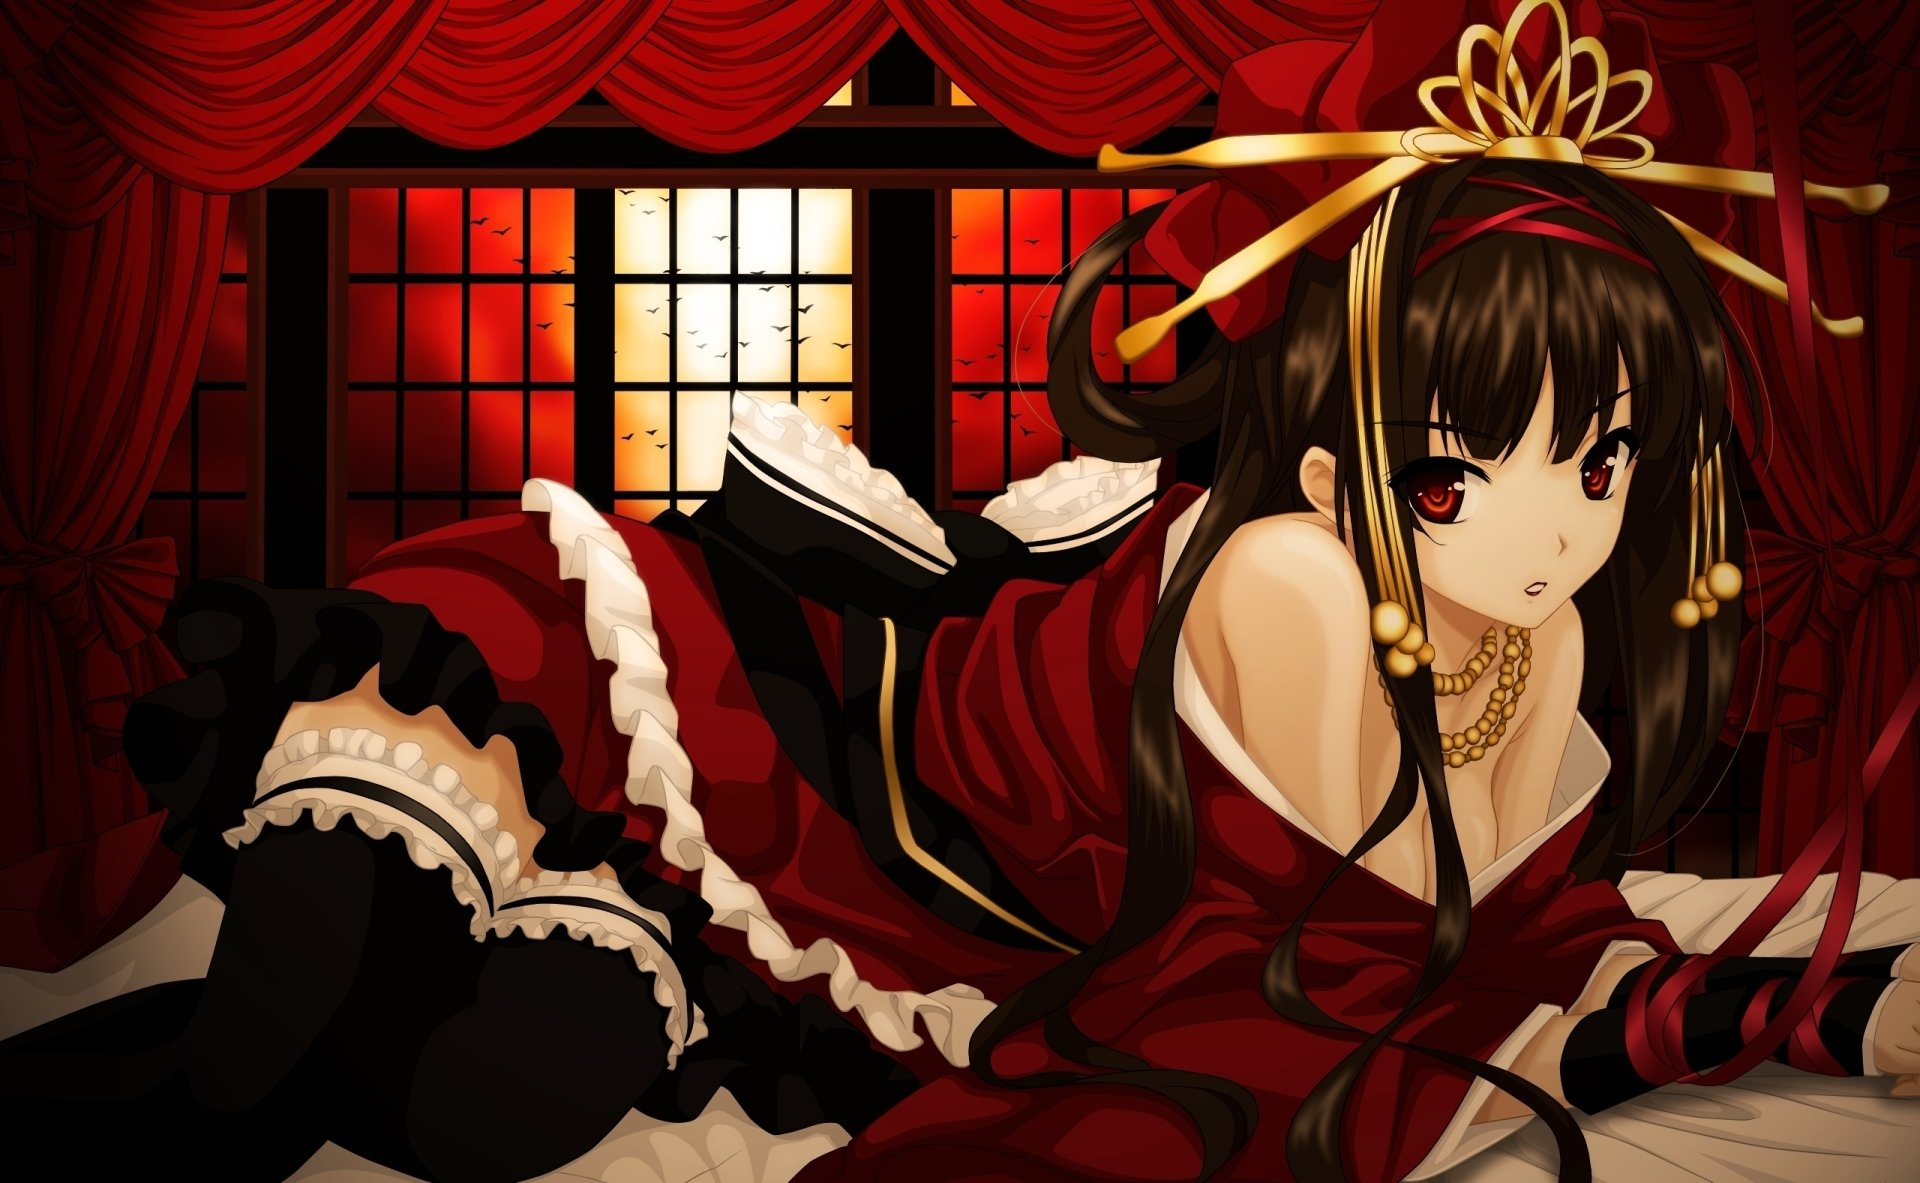 Anime - Original  Anime Original (Anime) Girl Wallpaper